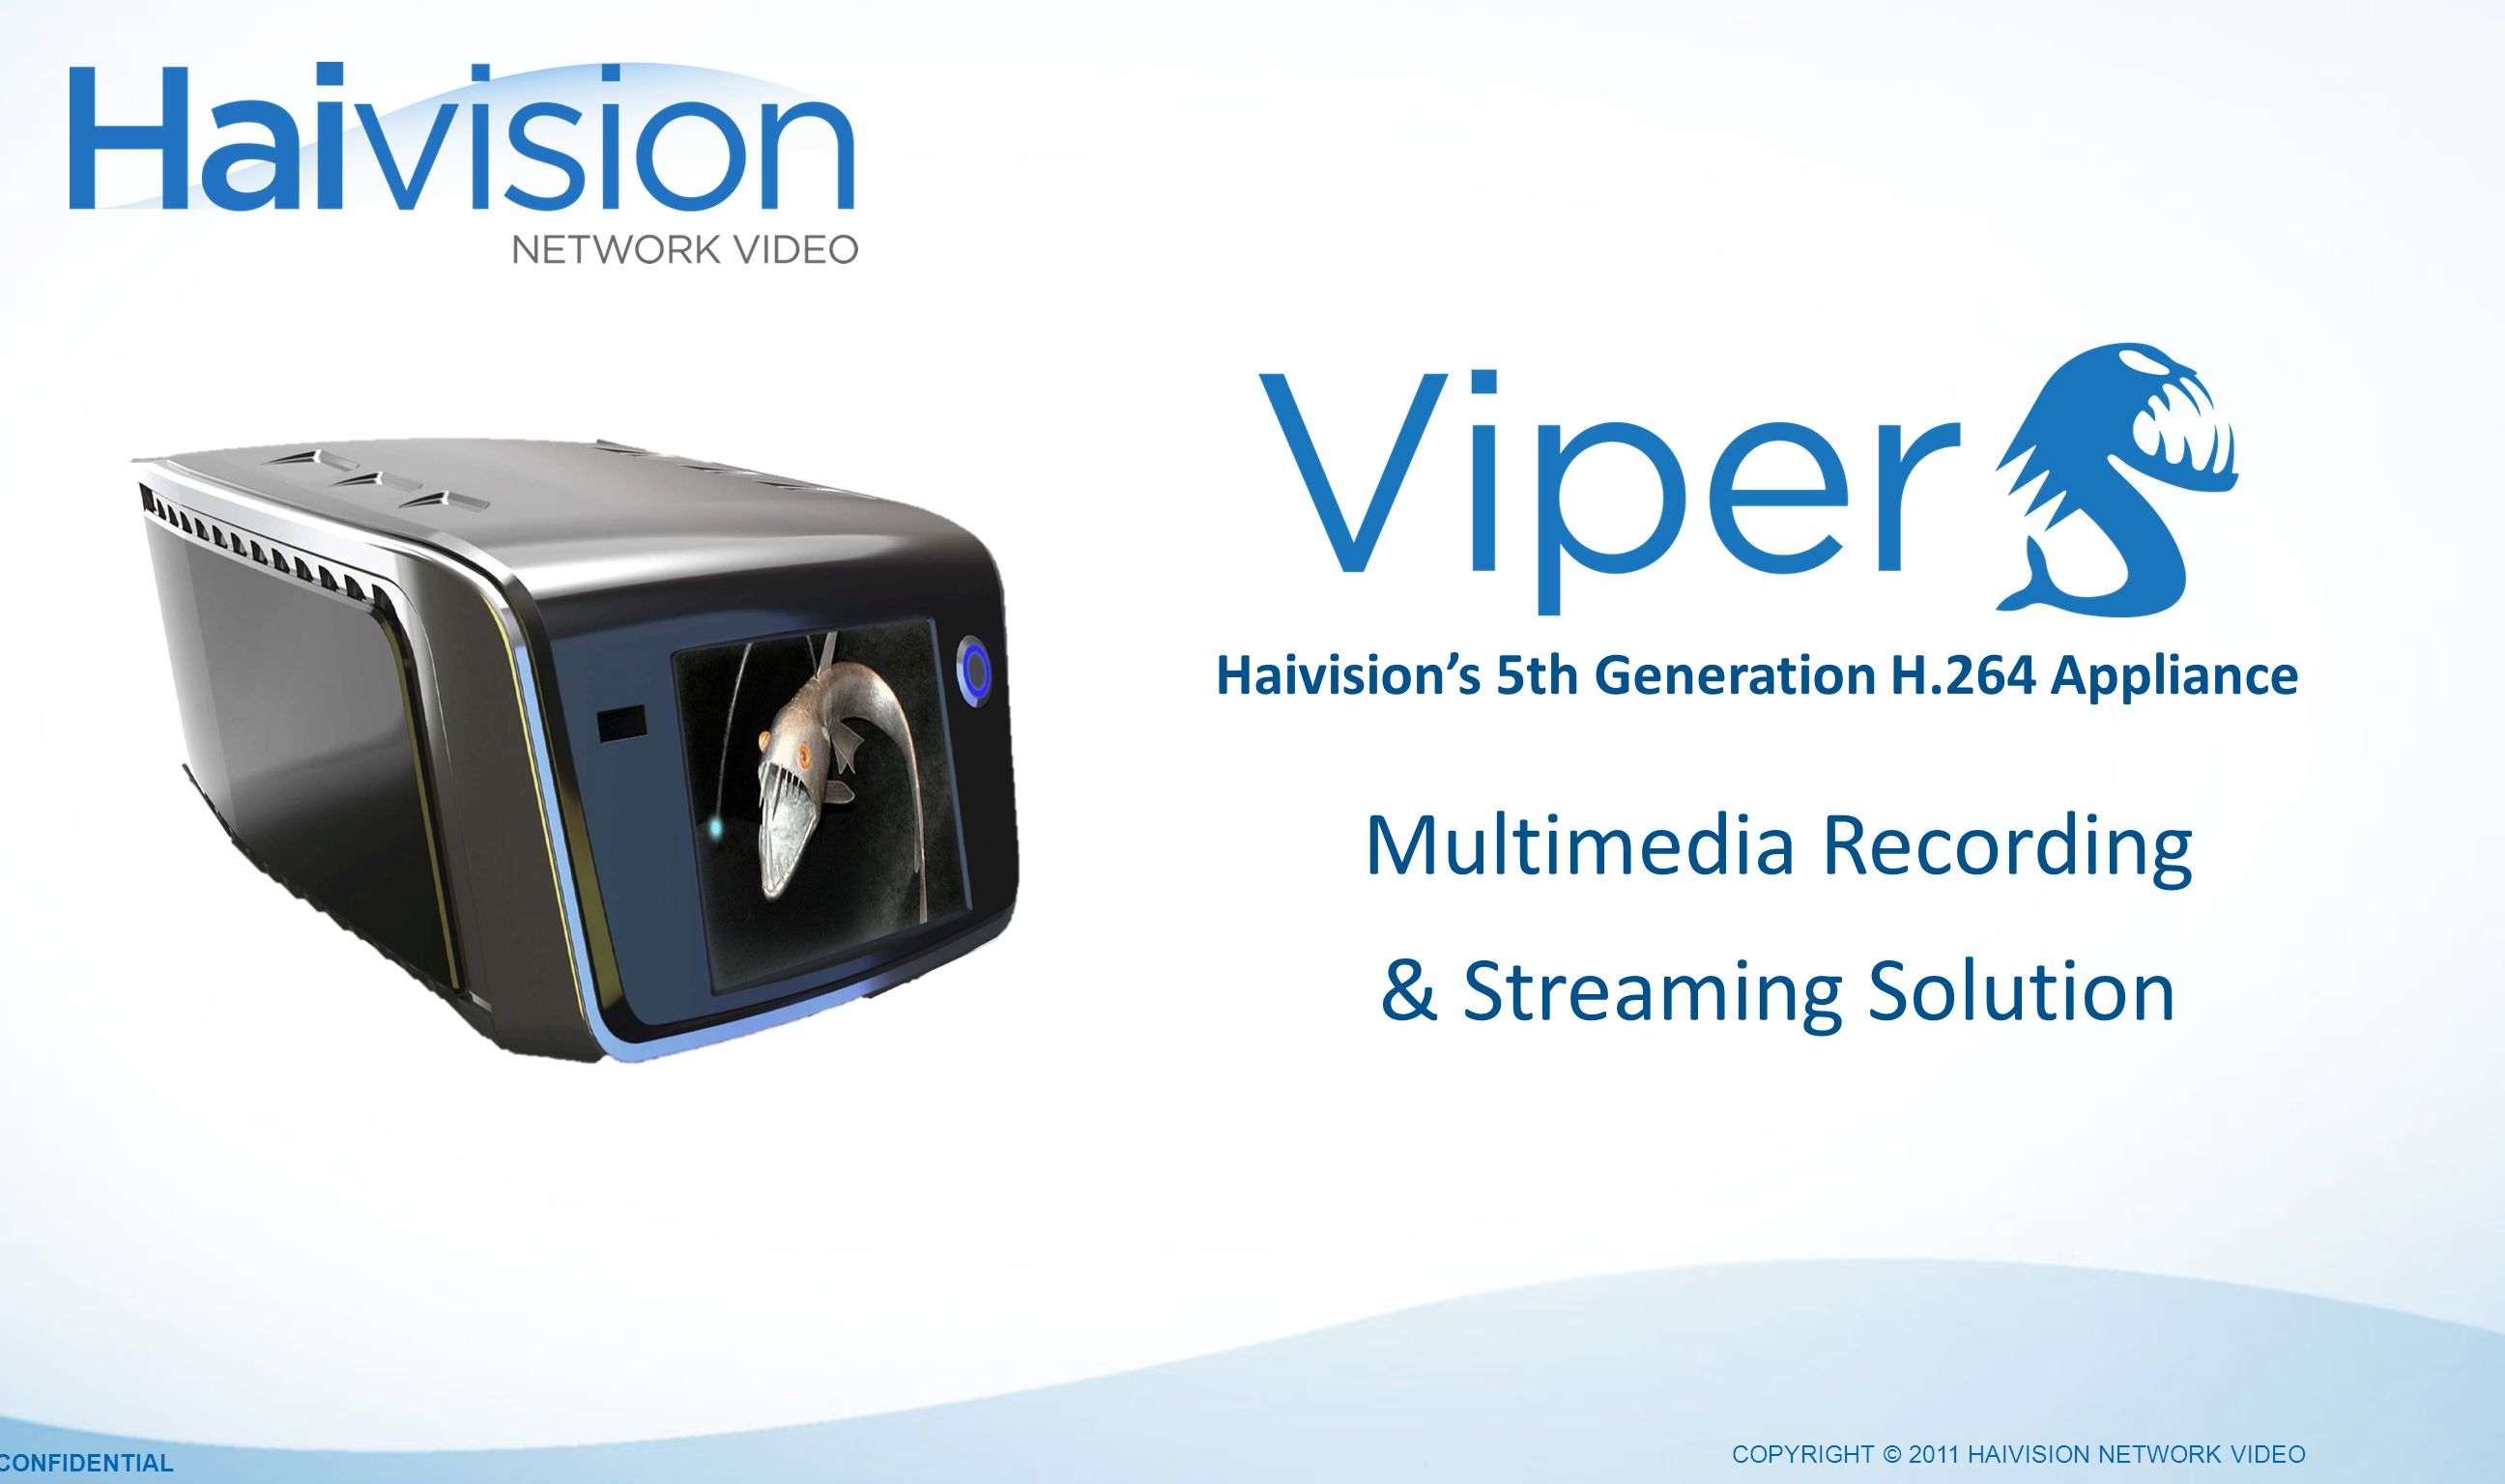 Haivision's 5th Generation H.264 Appliance